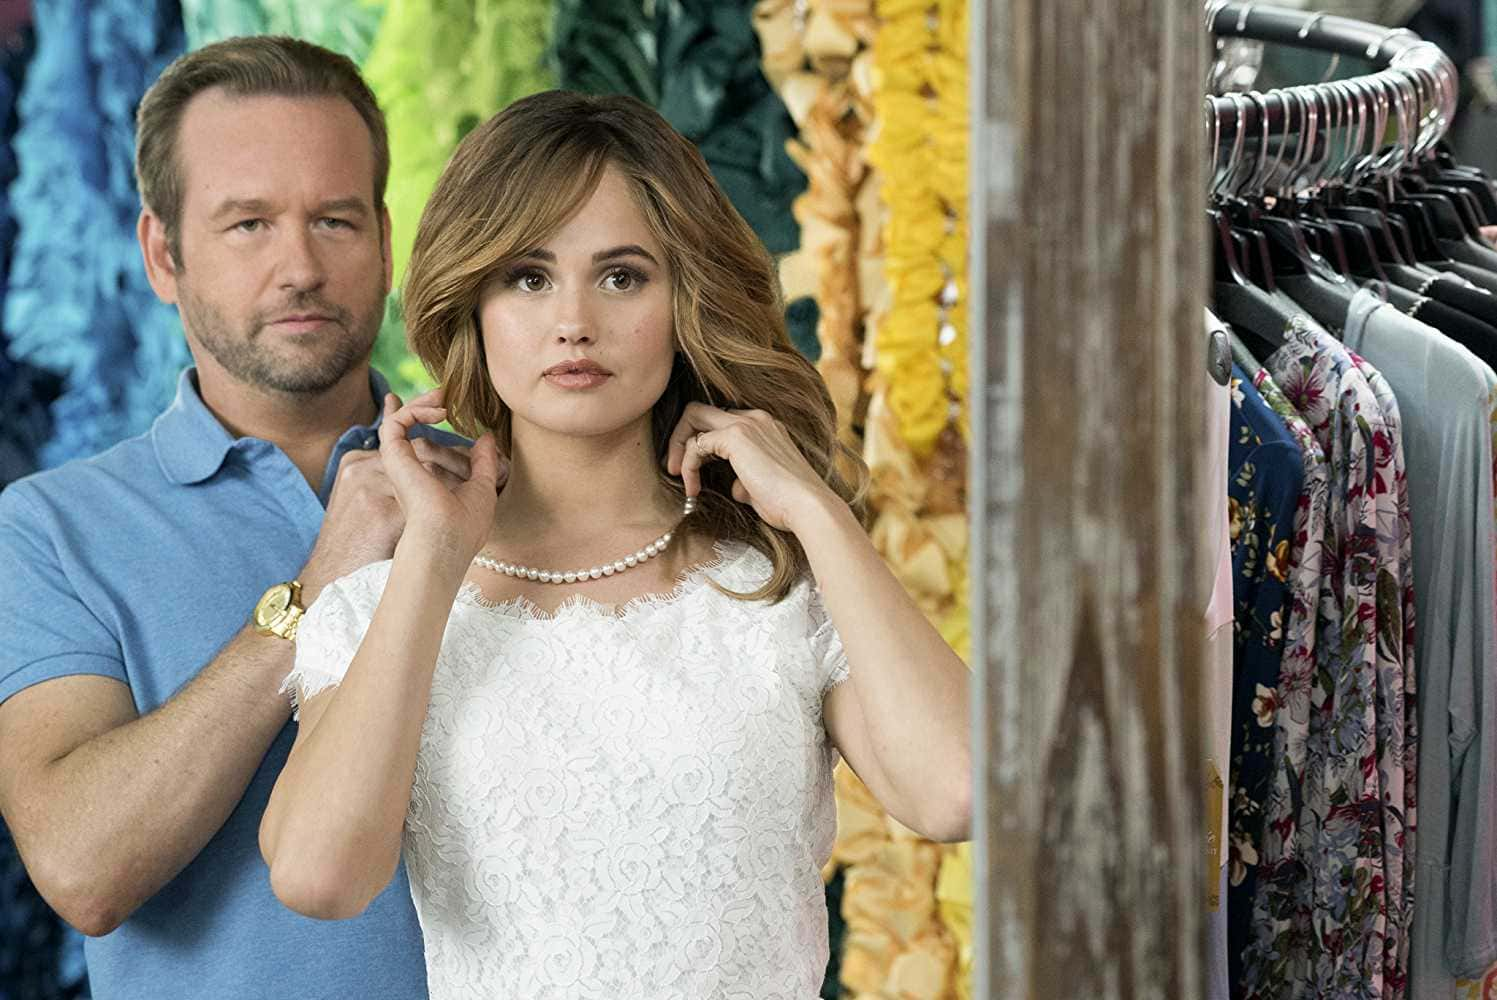 Debby Ryan and Dallas Roberts in 'Insatiable' (Source: IMDb)